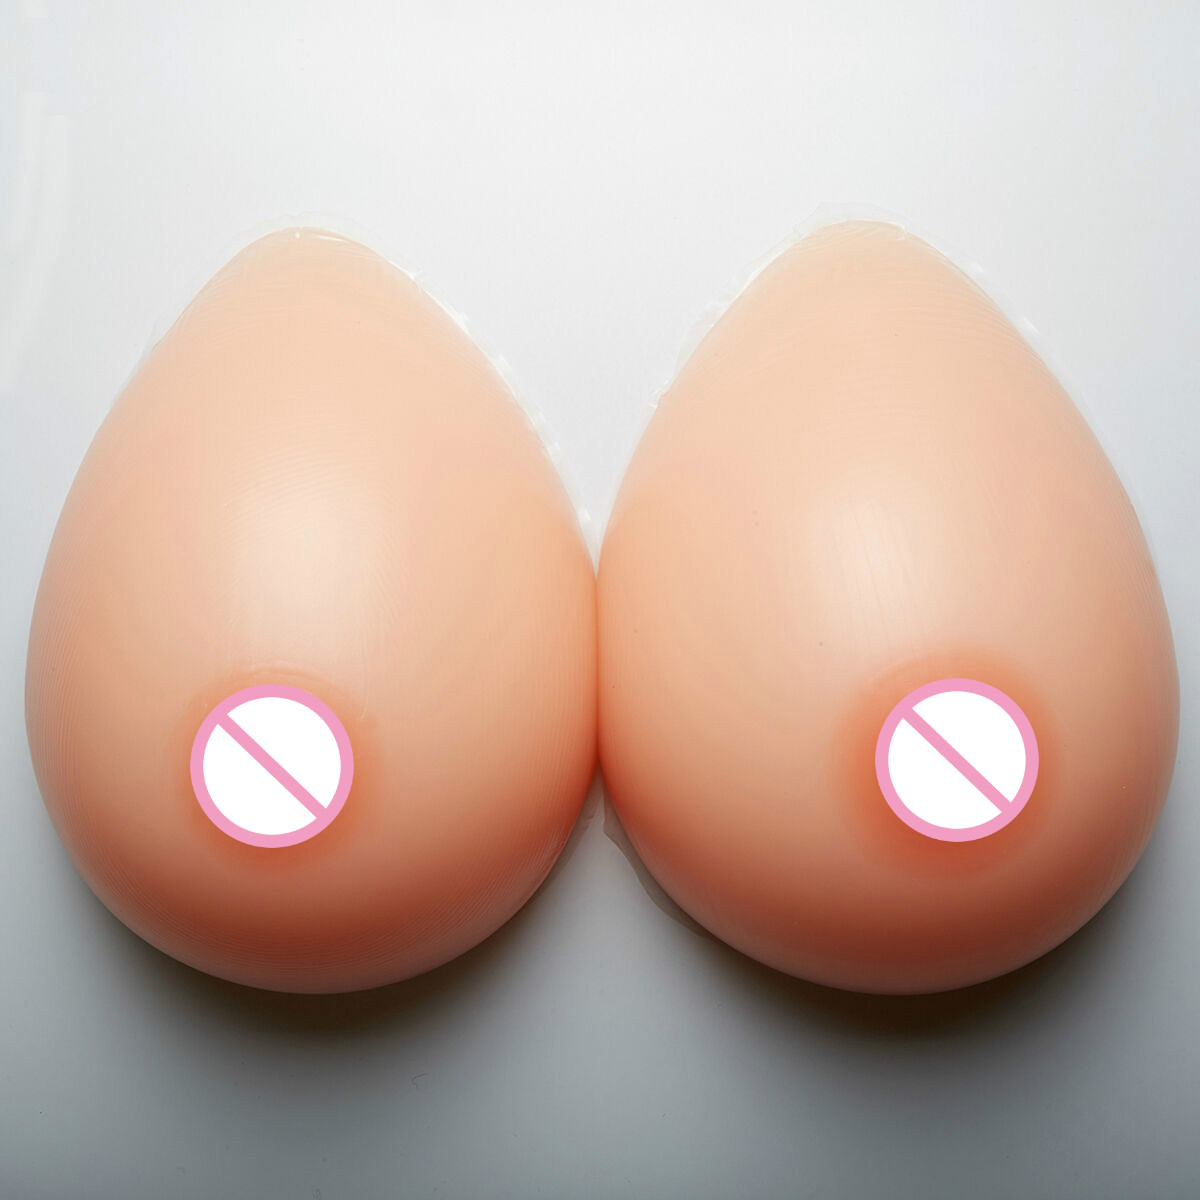 2019 New 1600g Soft Silicone Breast Forms Prosthesis EE Cup Mastectomy Boobs Enhancer Crossdresser Transgender Women